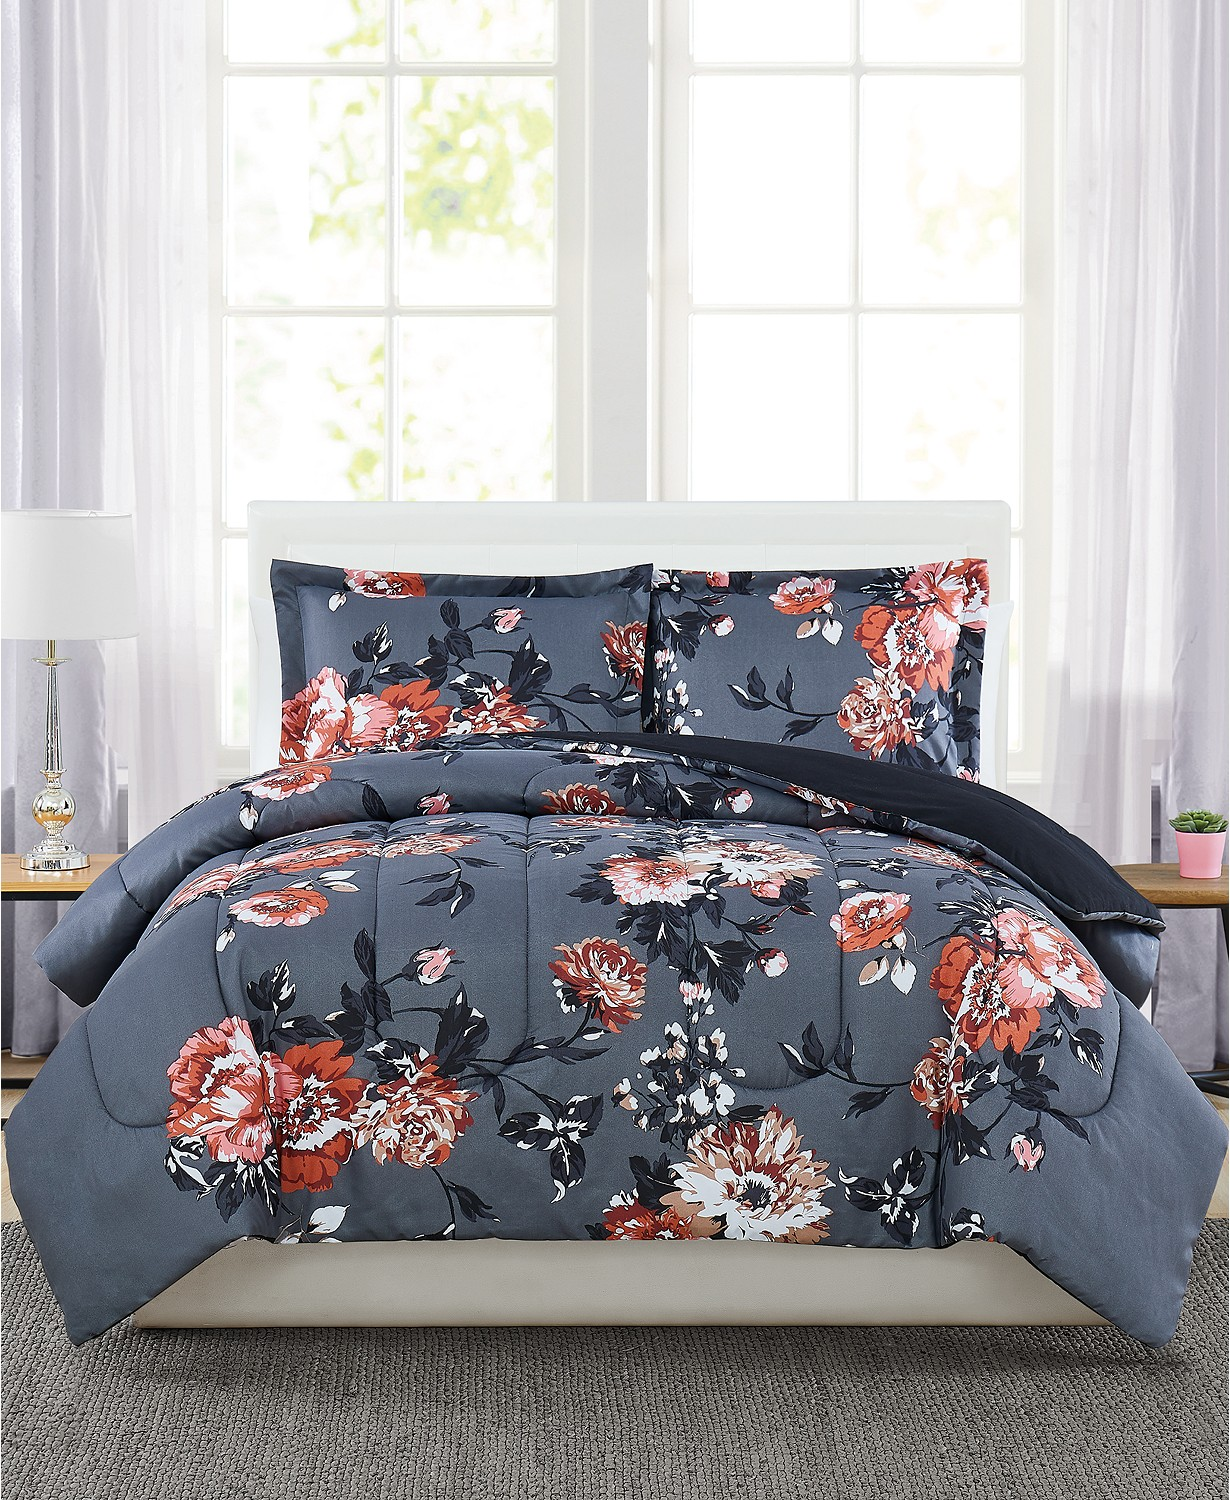 (69% OFF Deal) Manilla Floral King 3-Pc. Comforter Set $24.99